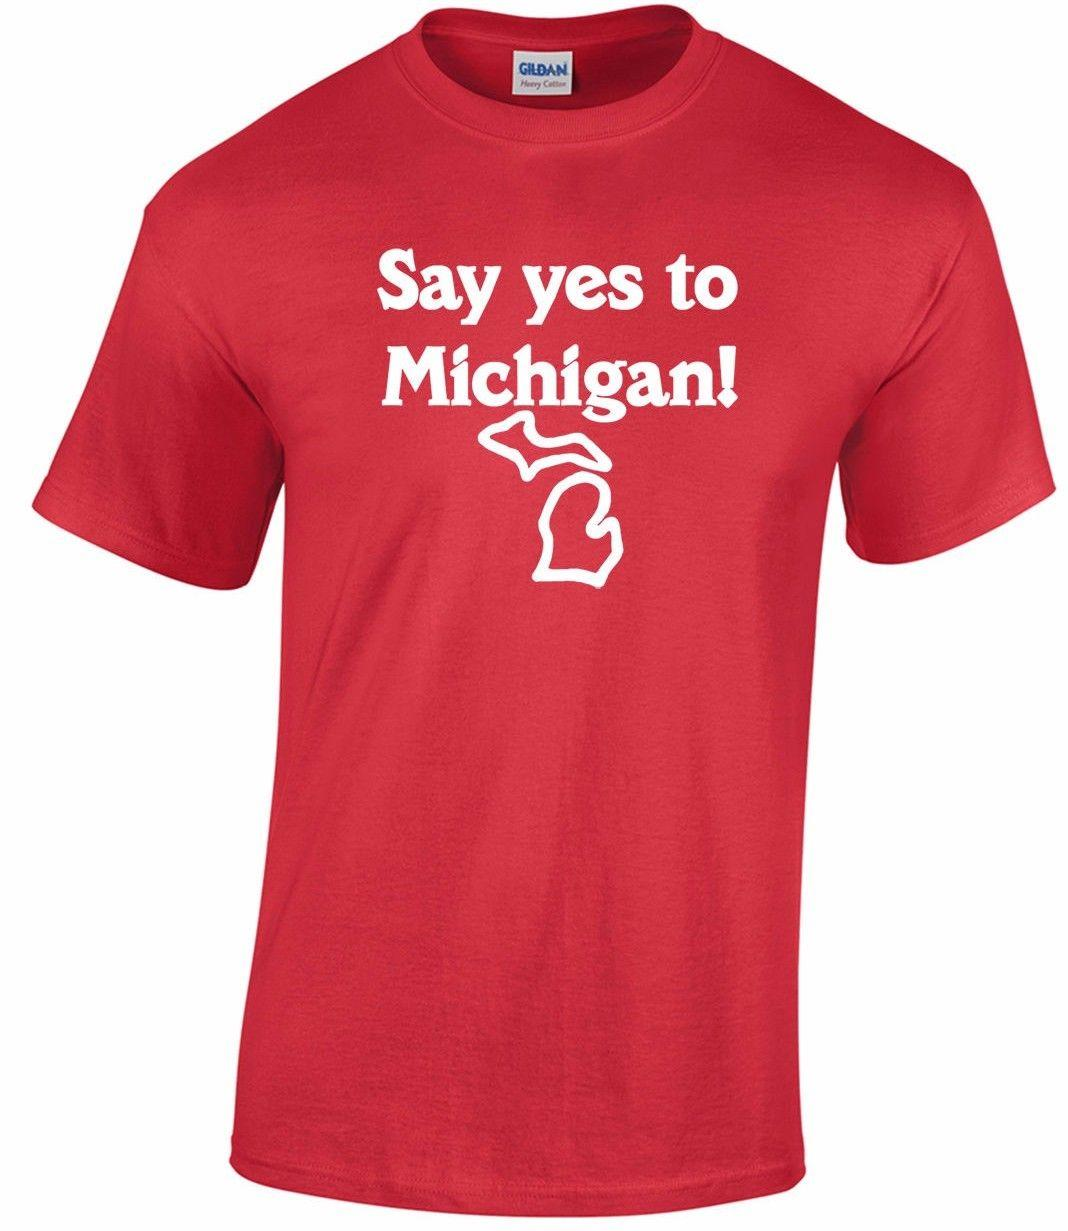 459233c0af877f SAY YES TO MICHIGAN T-shirt white jack stripes vintage 70's detroit punk  mc5 doaFunny free shipping Unisex top